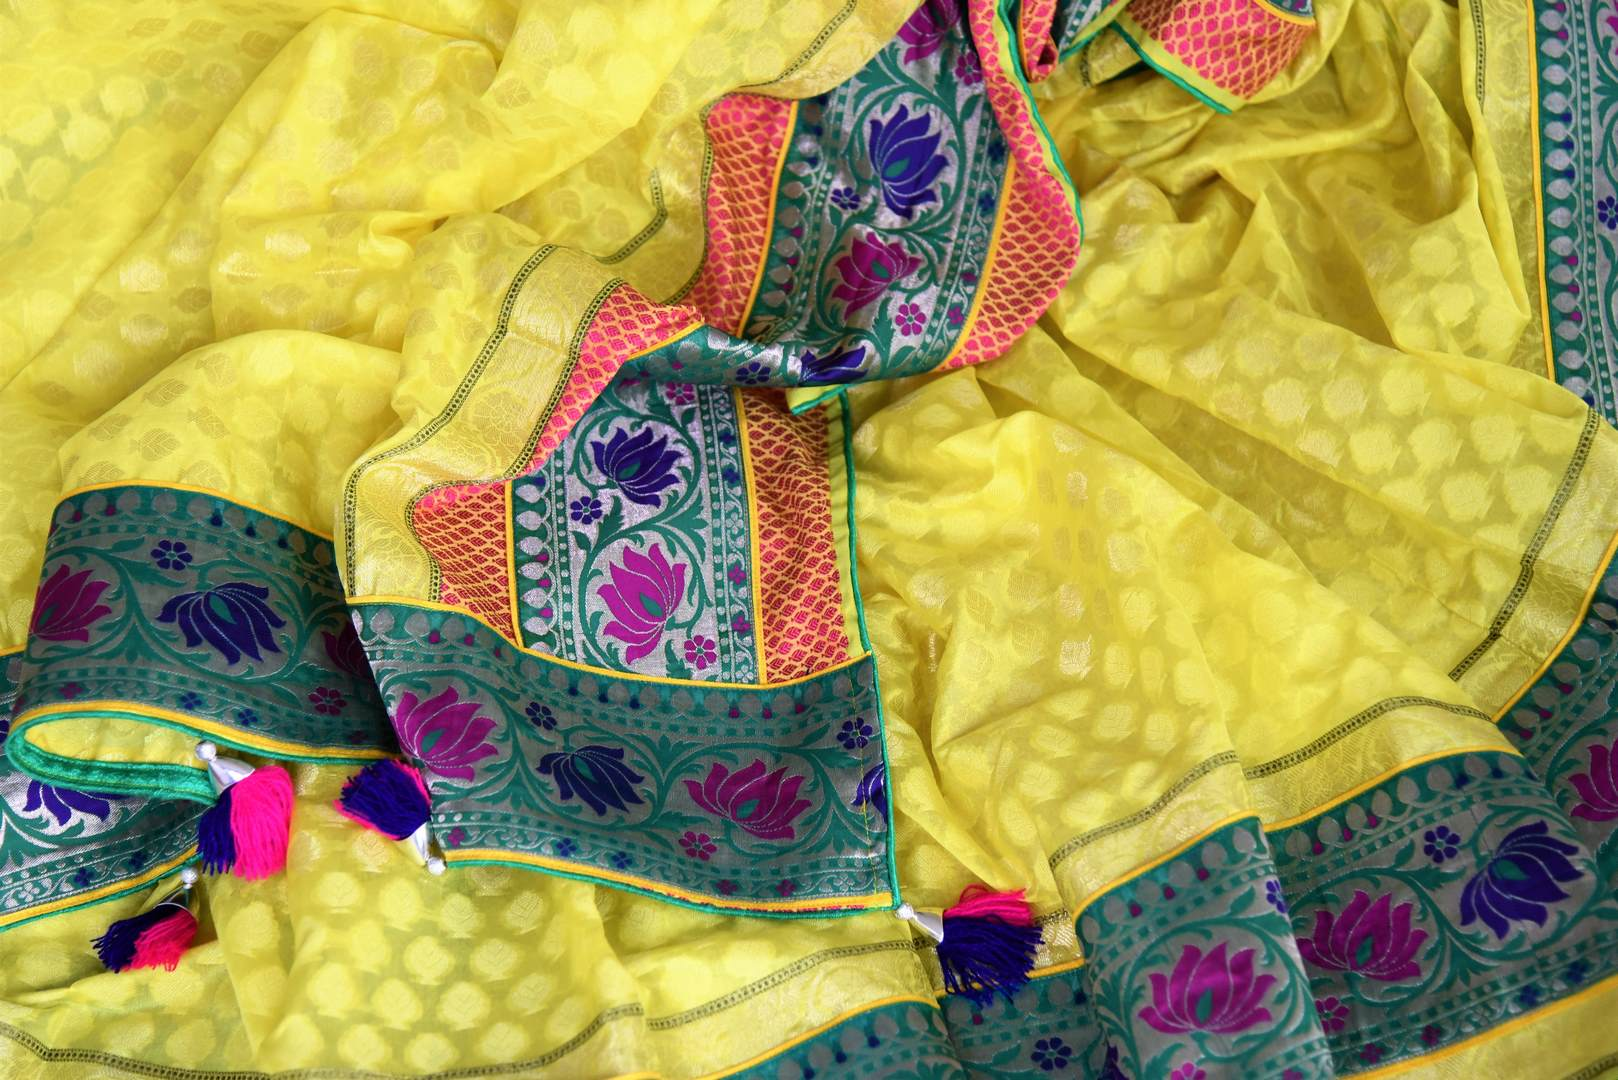 Buy bright yellow silk saree online in USA with floral zari minakari border. Shop the latest Indian women clothing and designer sarees for weddings and special occasions from Pure Elegance Indian clothing store in USA.-details